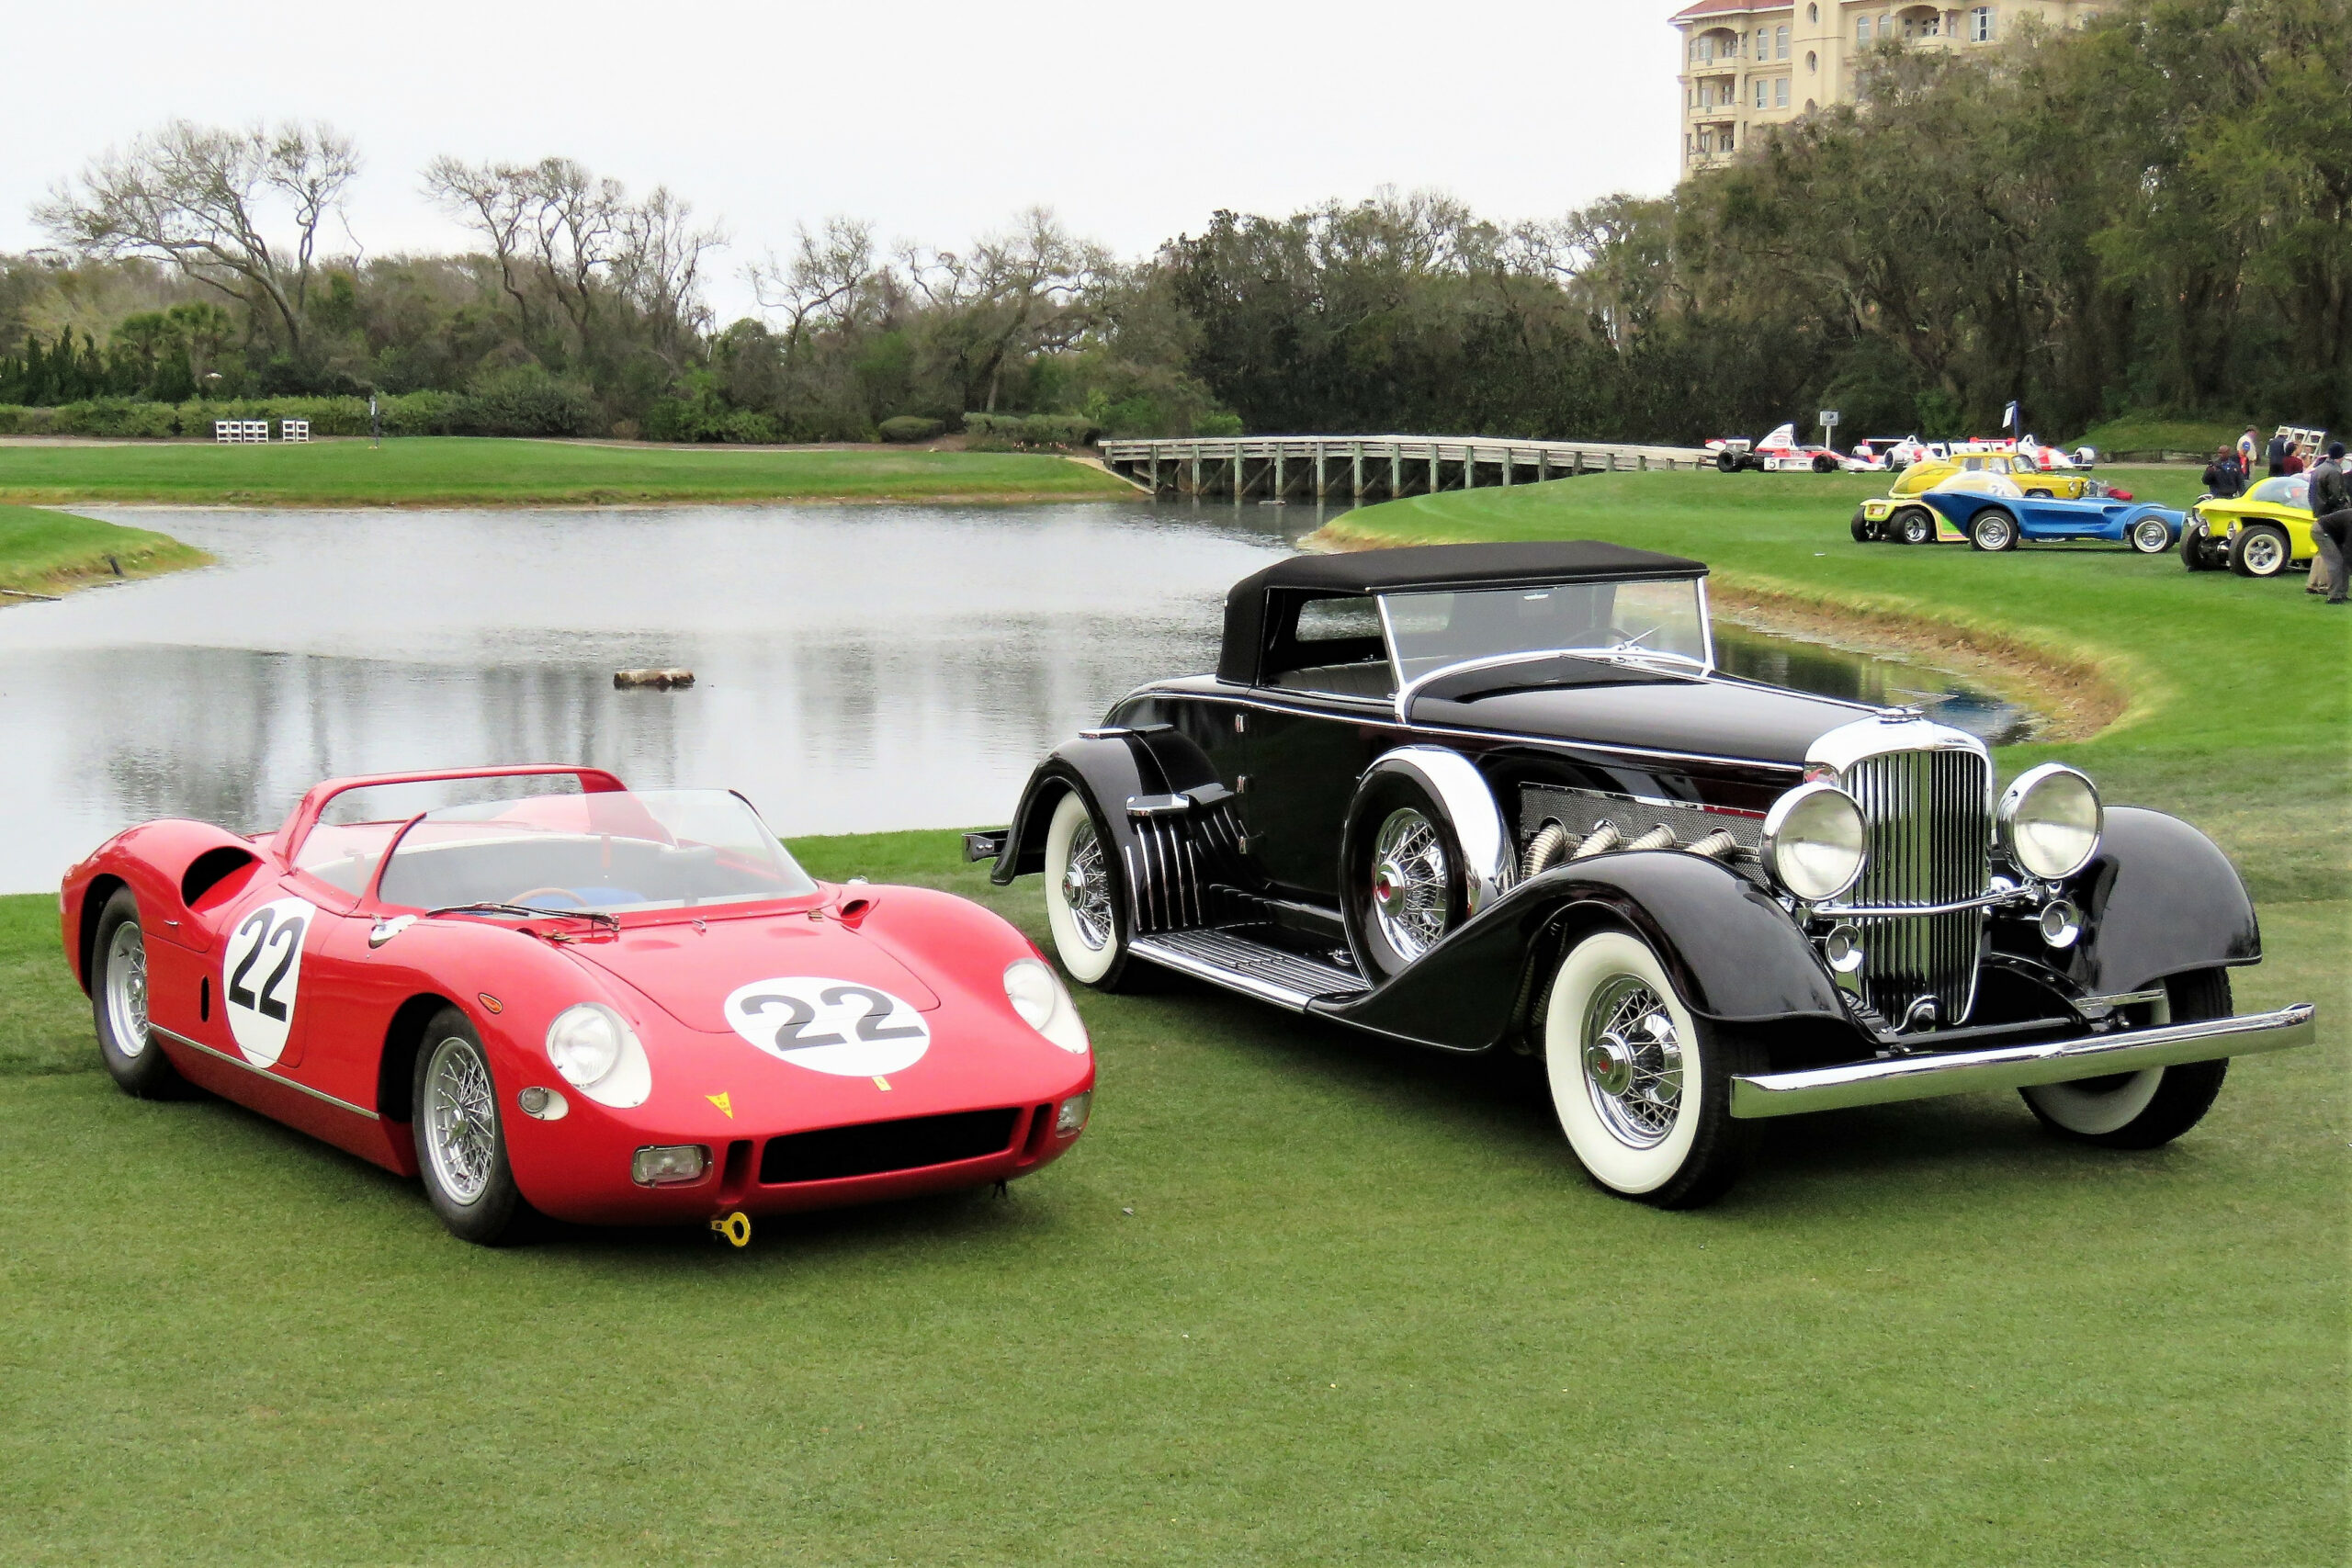 Amelia Island Concours changes its dates for 7 events